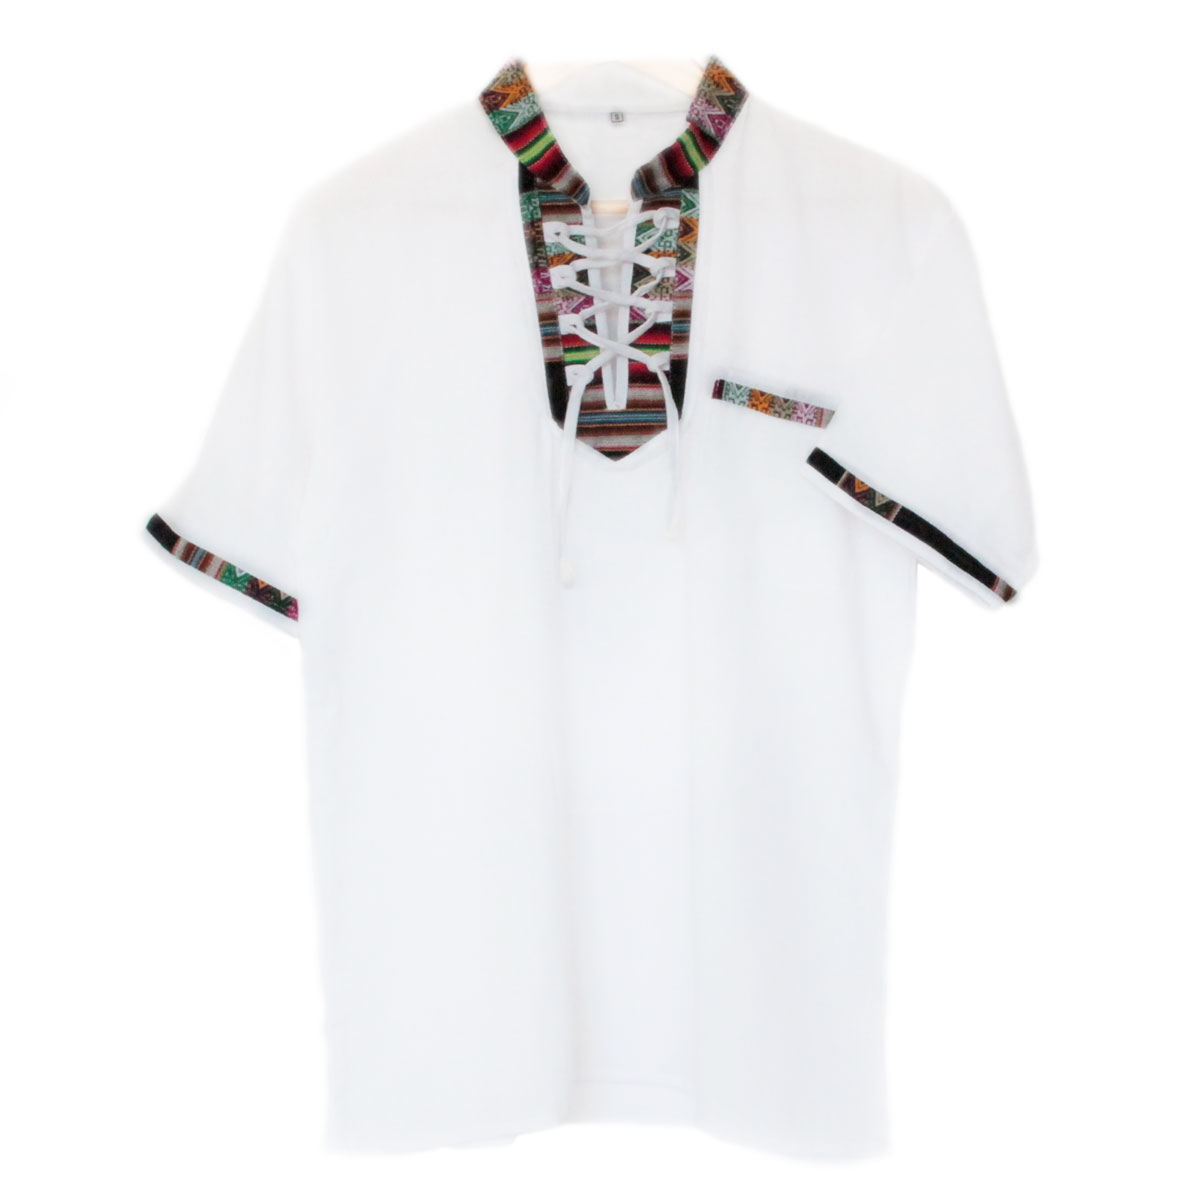 Inka-Products-Chemise Col Mao Homme-Tissu Traditionnel Andin Coloré